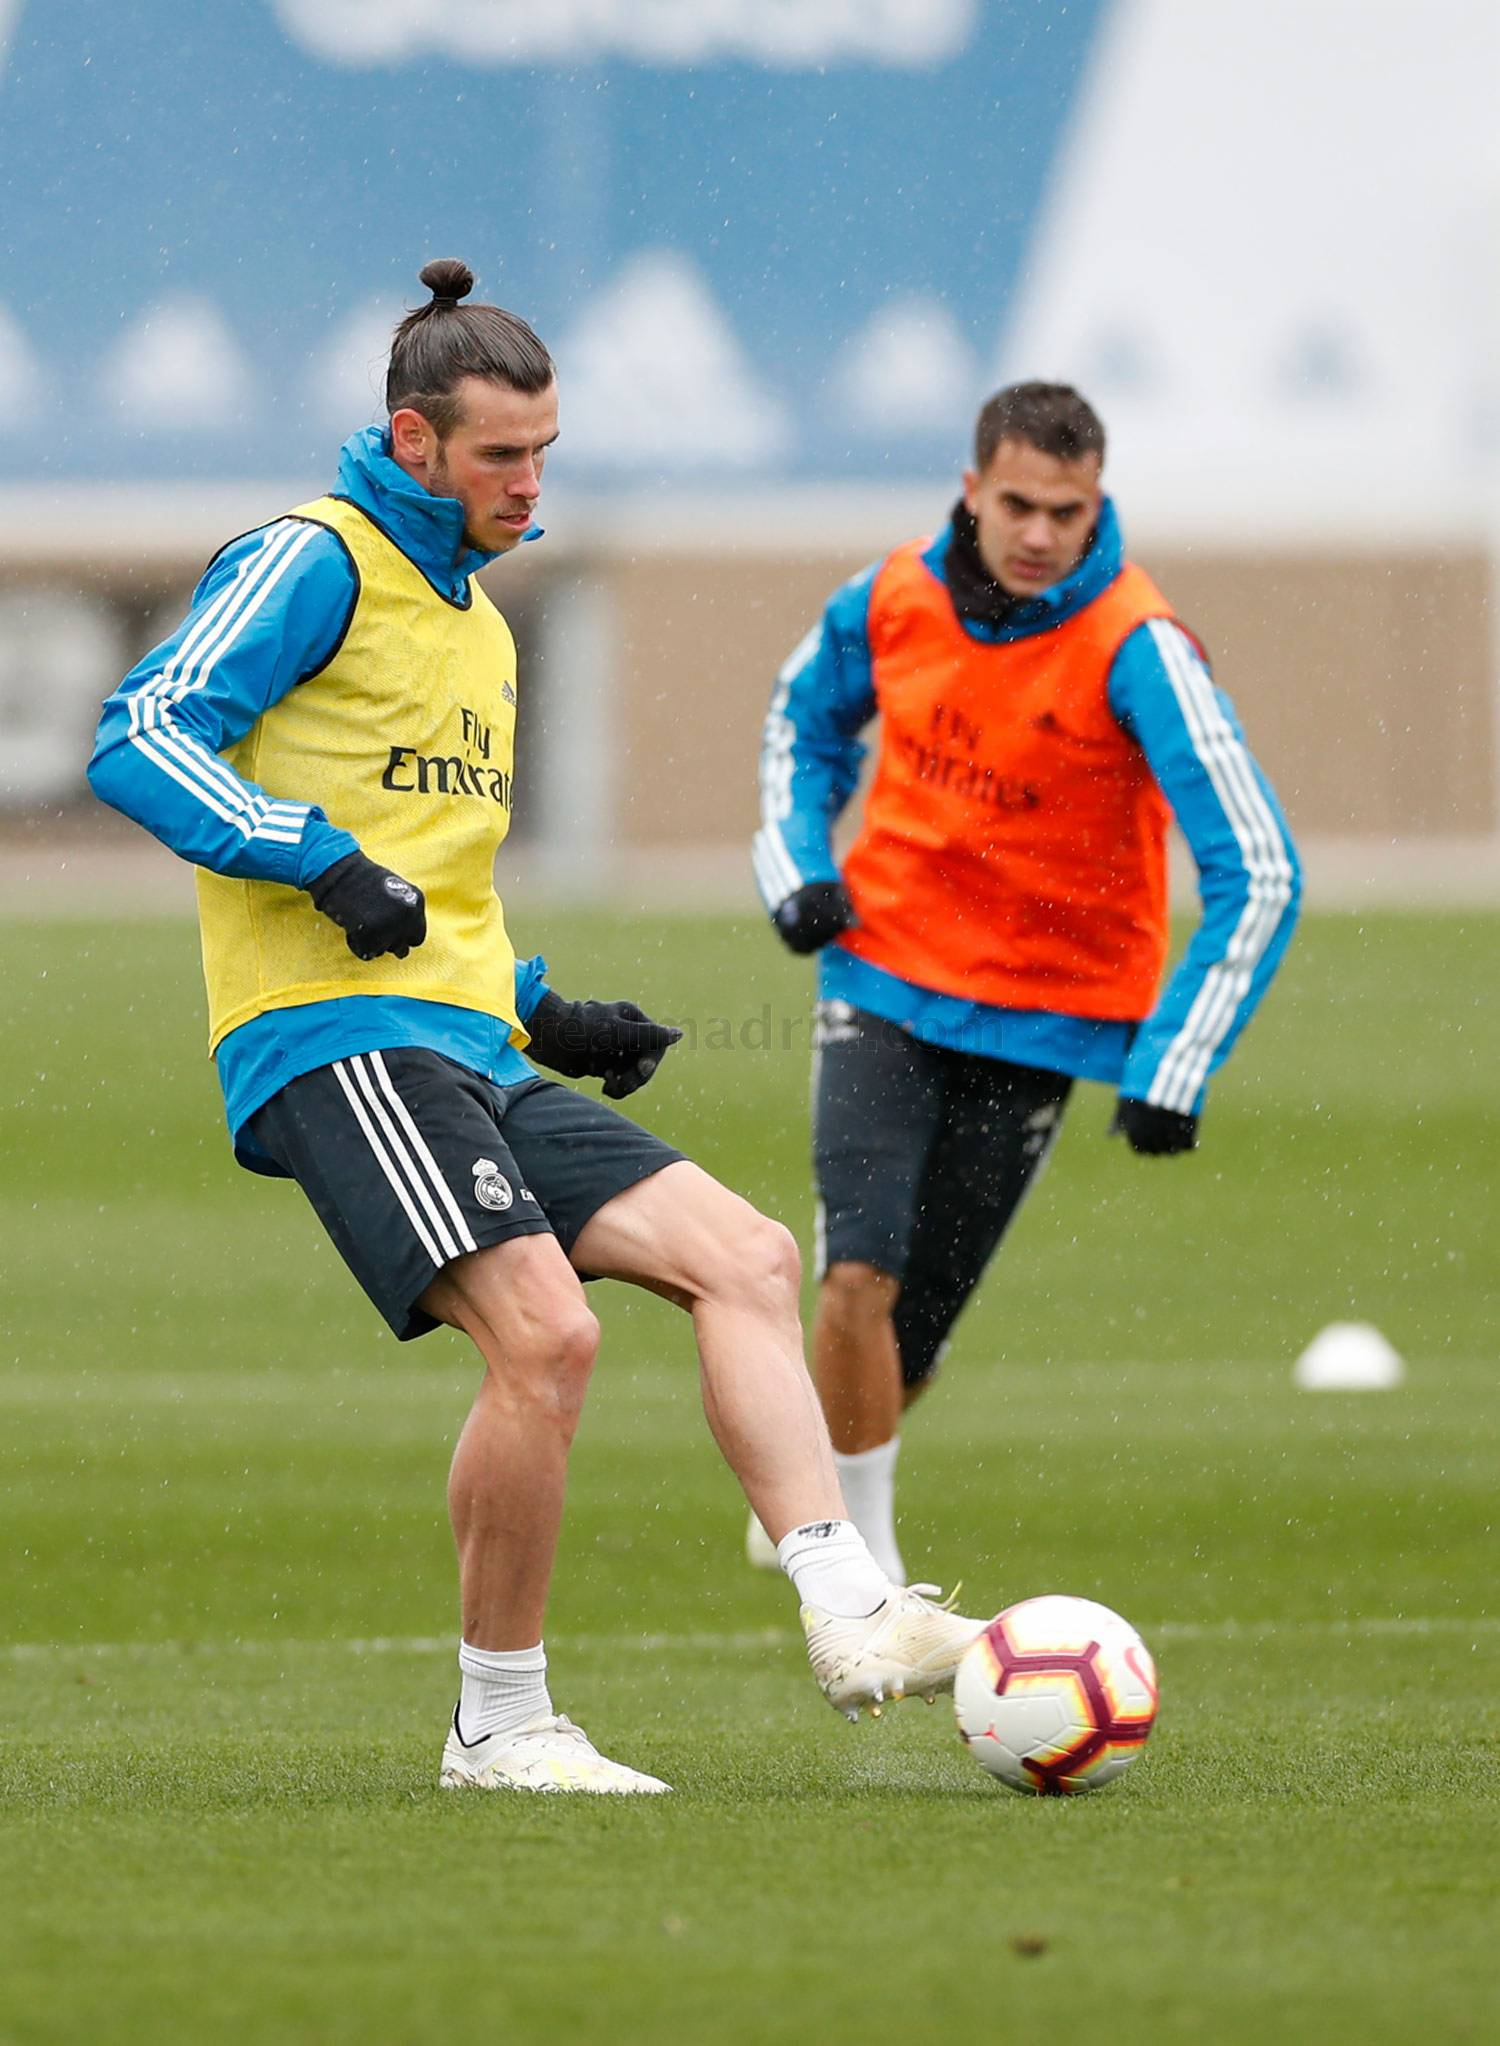 Real Madrid - Entrenamiento del Real Madrid - 18-04-2019